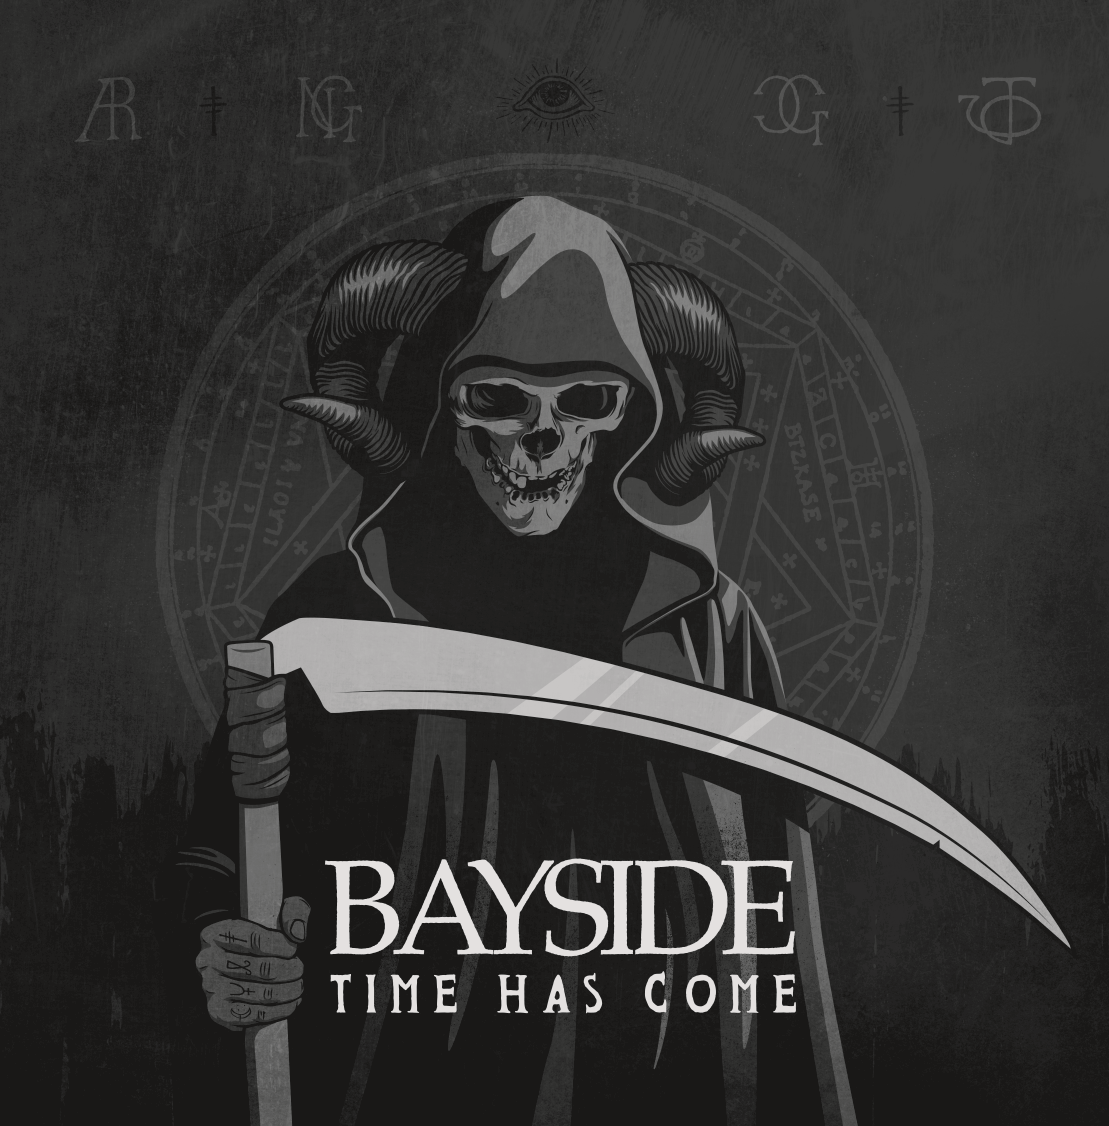 Bayside - Time Has Come [Vinyl Single]